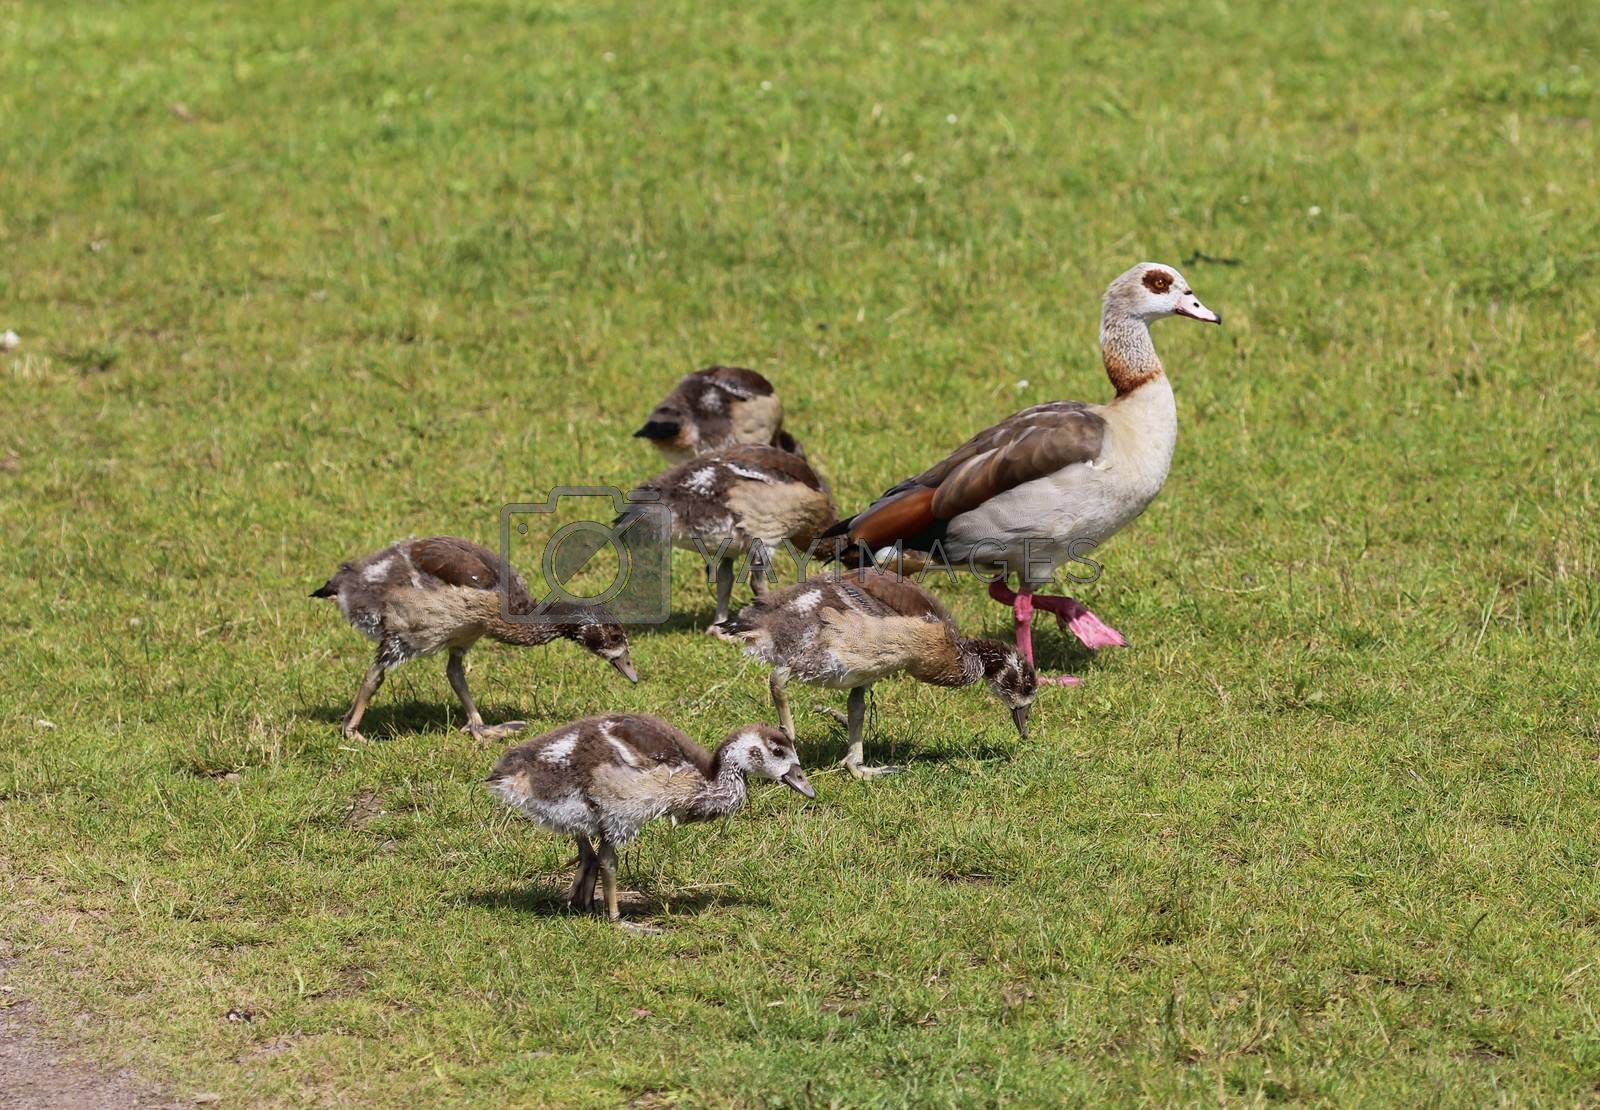 Royalty free image of couple Egyptian goose (Alopochen aegyptiaca) with their young chicks eating grass by michaelmeijer